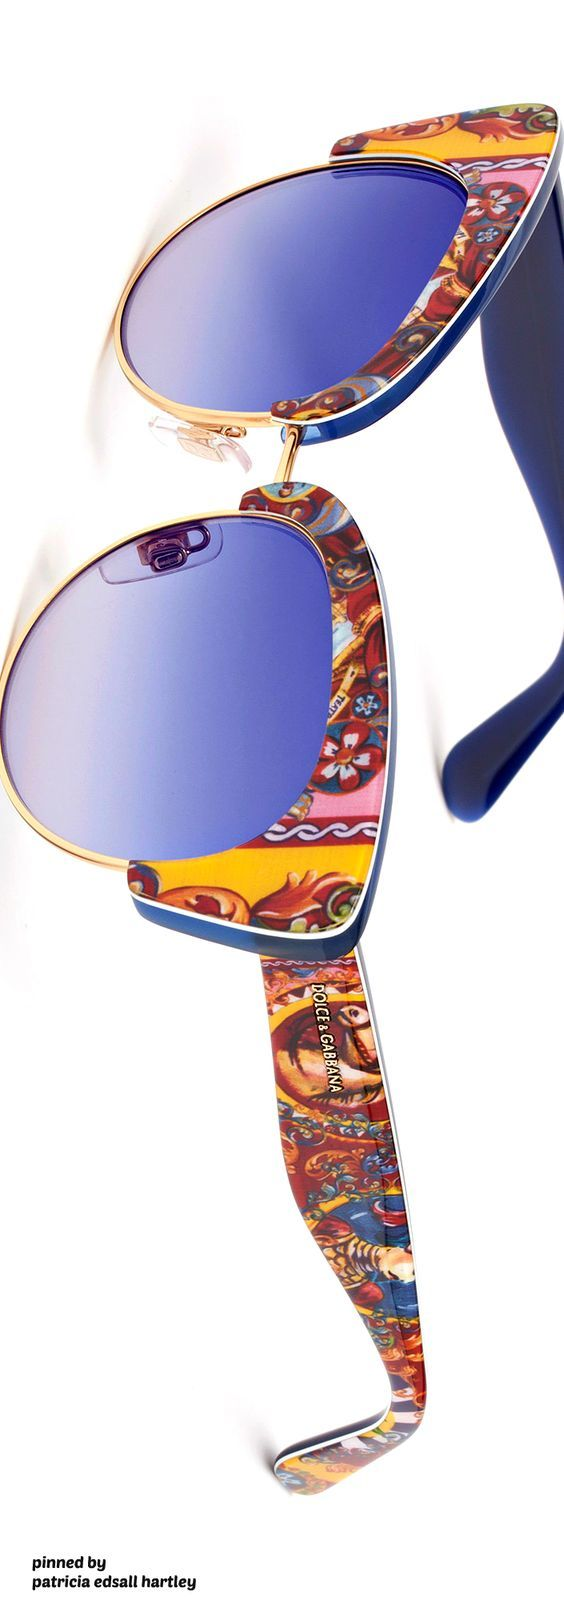 259ee6a6ba8826 Cat-eye sunglasses for women Dolce   Gabbana with acetate and metal frame  and blue gradient lenses. Sicilian Carretto print on frontal and temples.